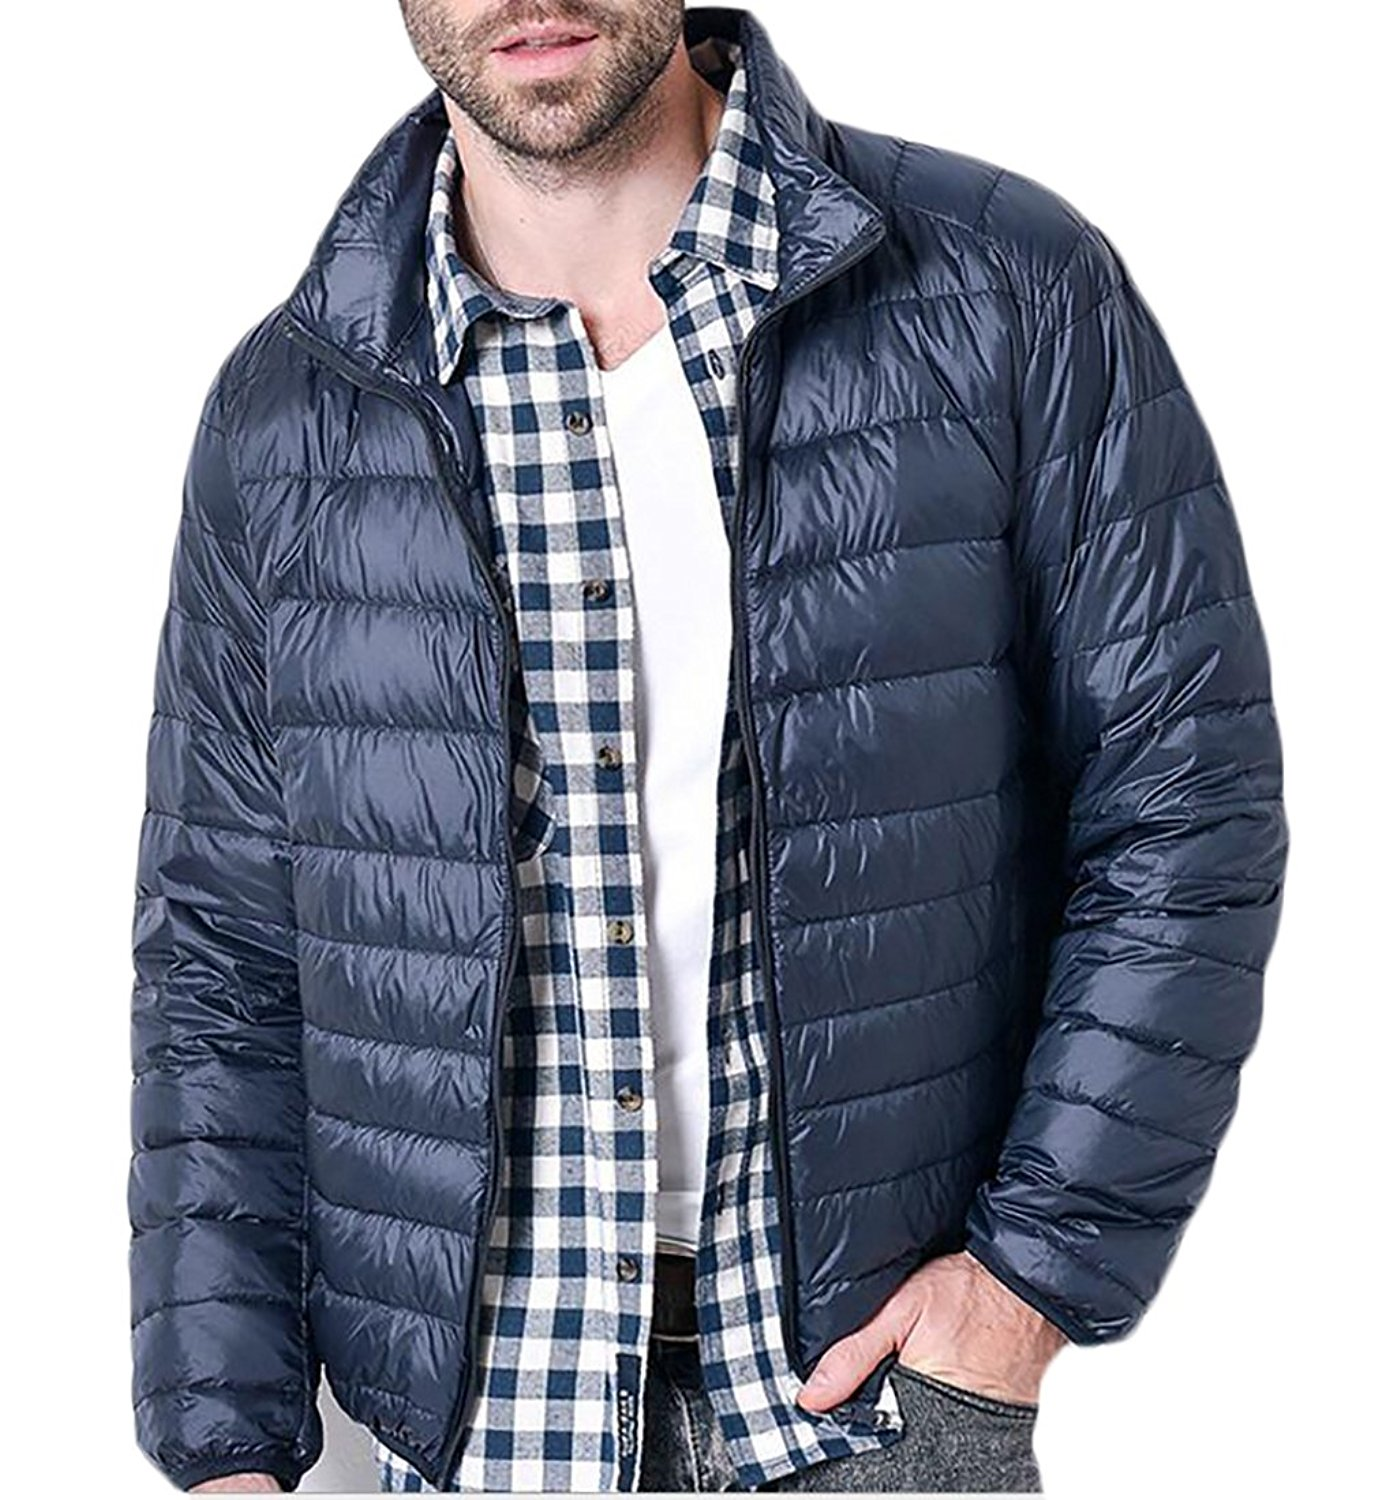 XTX Mens Winter Thicker Stand Collar Plus Size Relaxed Fit Down Quilted Coat Outerwear